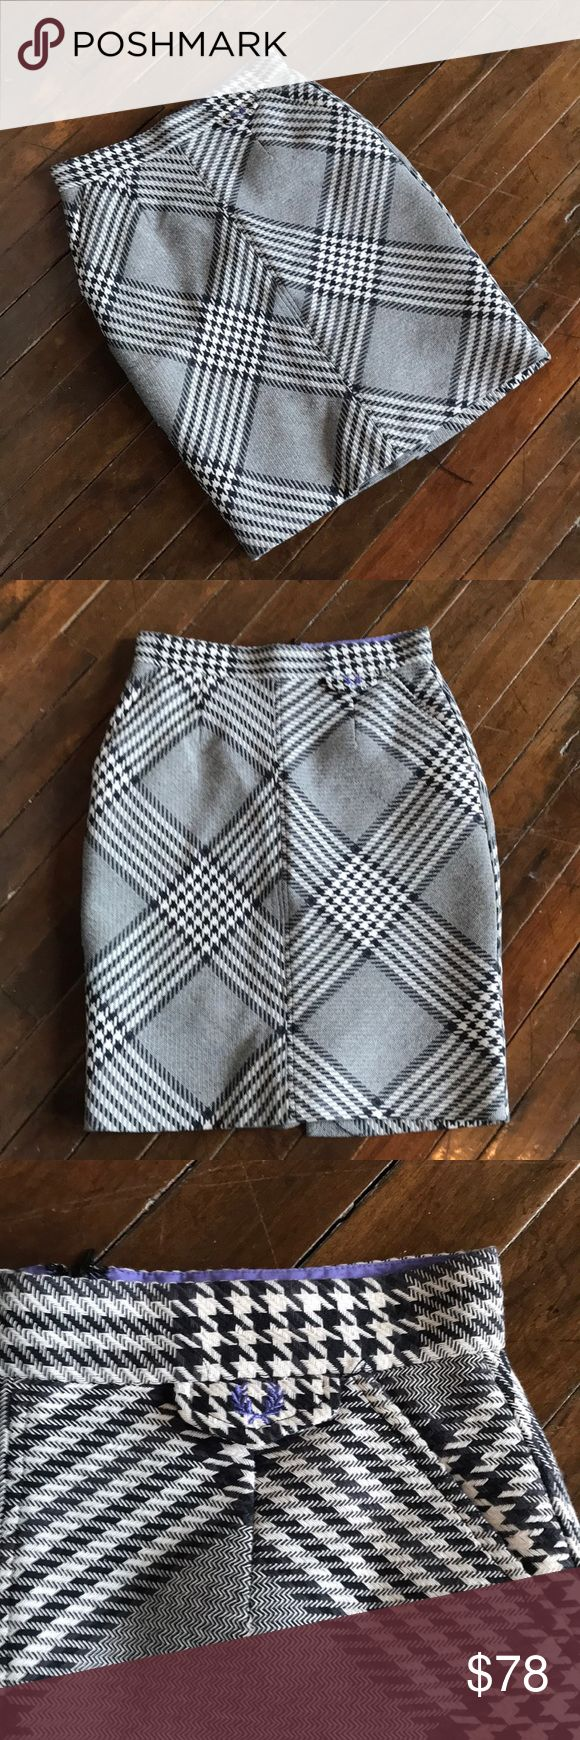 """fred perry prince wales houndstooth pencil skirt uk 10 / us 6. mod / skinhead / british designer waist: 26-27"""" hips: 38"""" length: 22"""" Fred Perry Skirts Mini"""